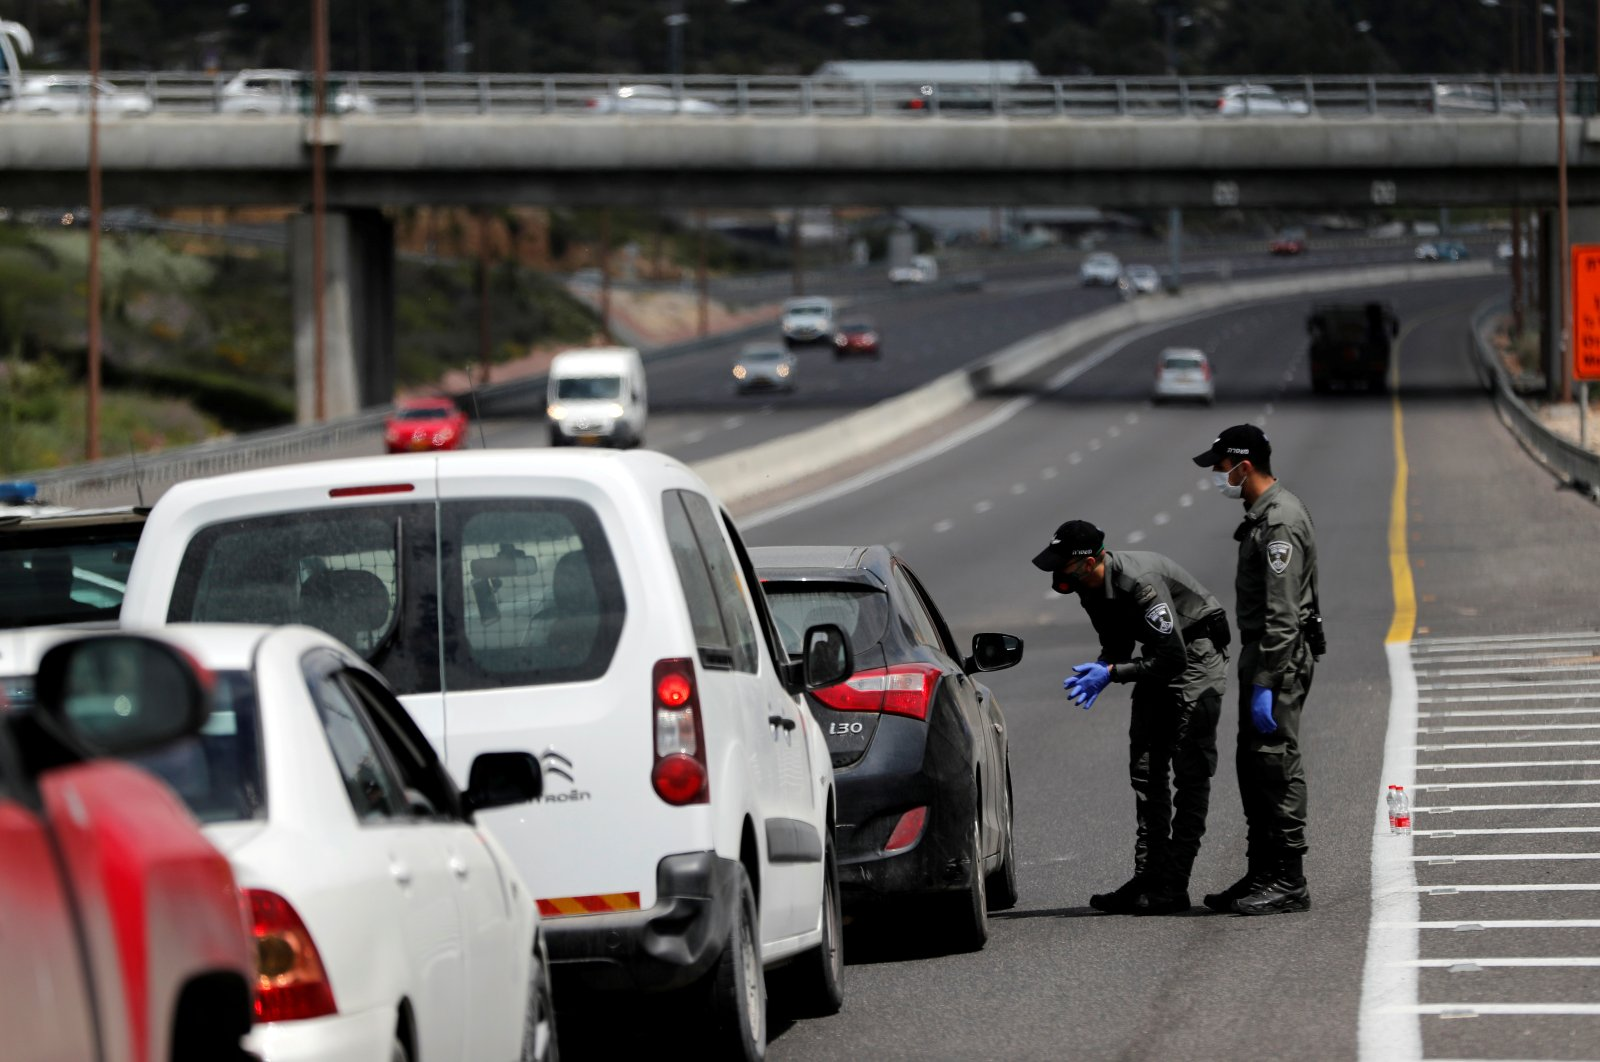 Border policemen chat with a driver at a roadblock set up by police as they begin to enforce a national lockdown to fight the spread of the coronavirus, on a road leading to Jerusalem, near Ein Hemed, Israel, Tuesday, April 7, 2020. (AP Photo)